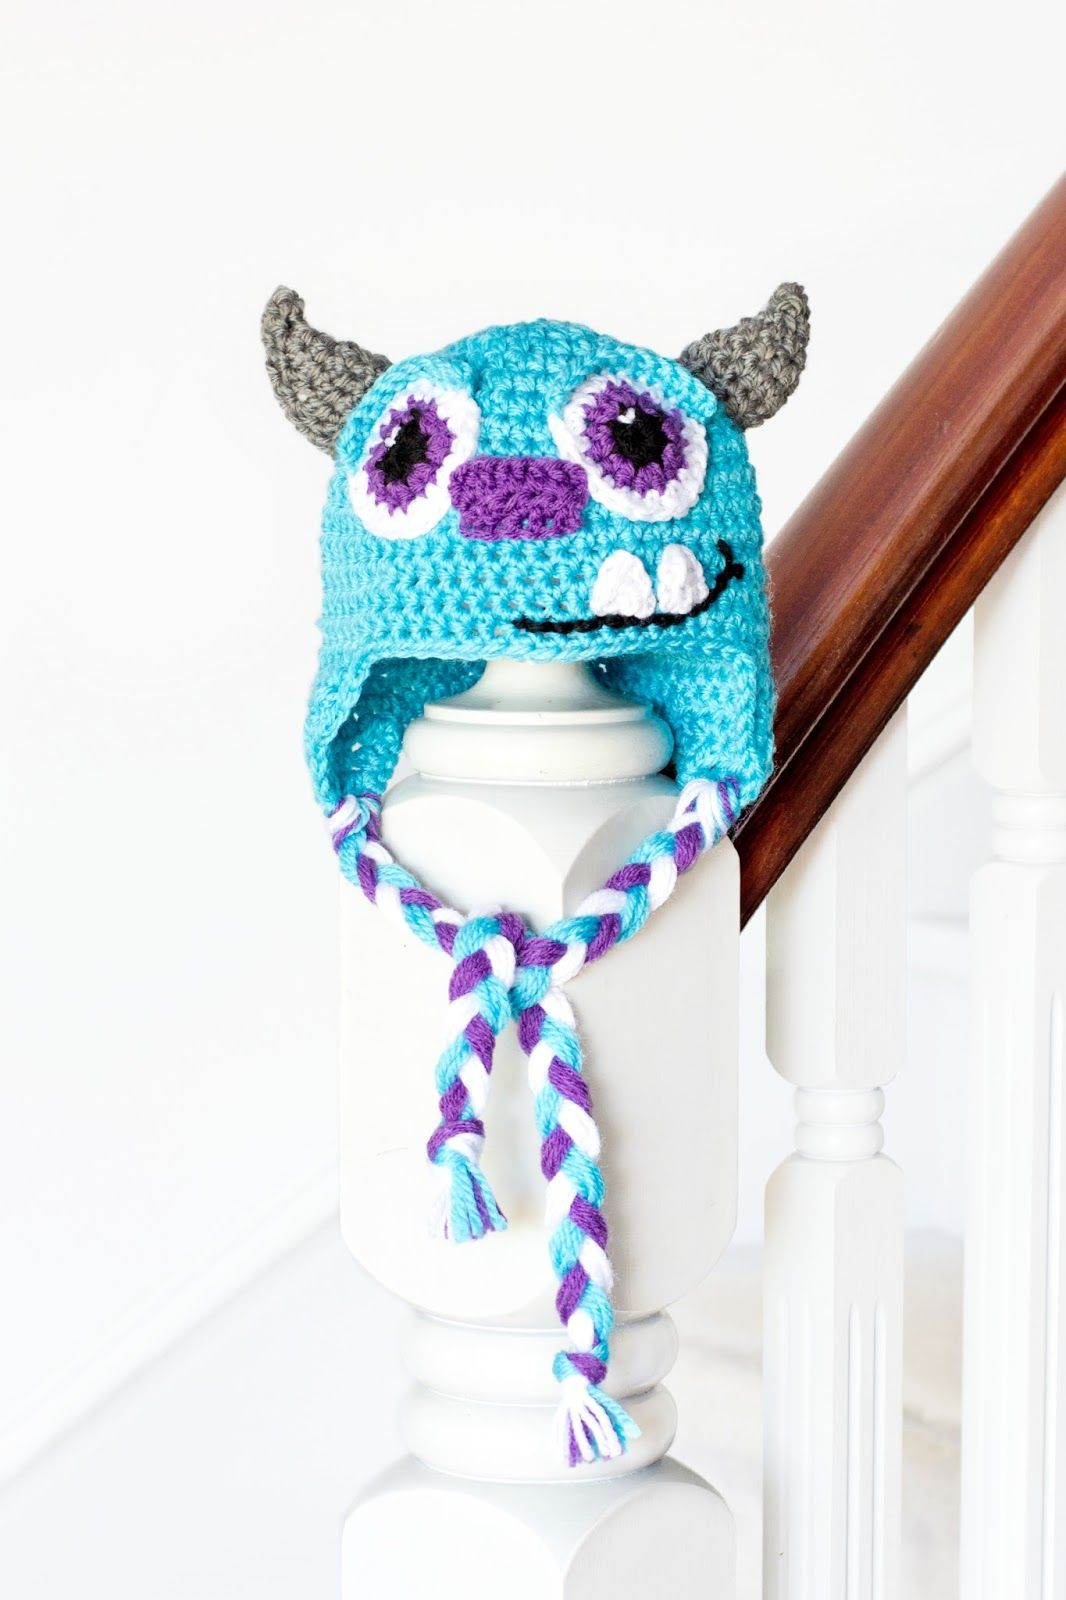 Monsters Inc. Sulley Inspired Baby Hat Crochet Pattern | Pinterest ...